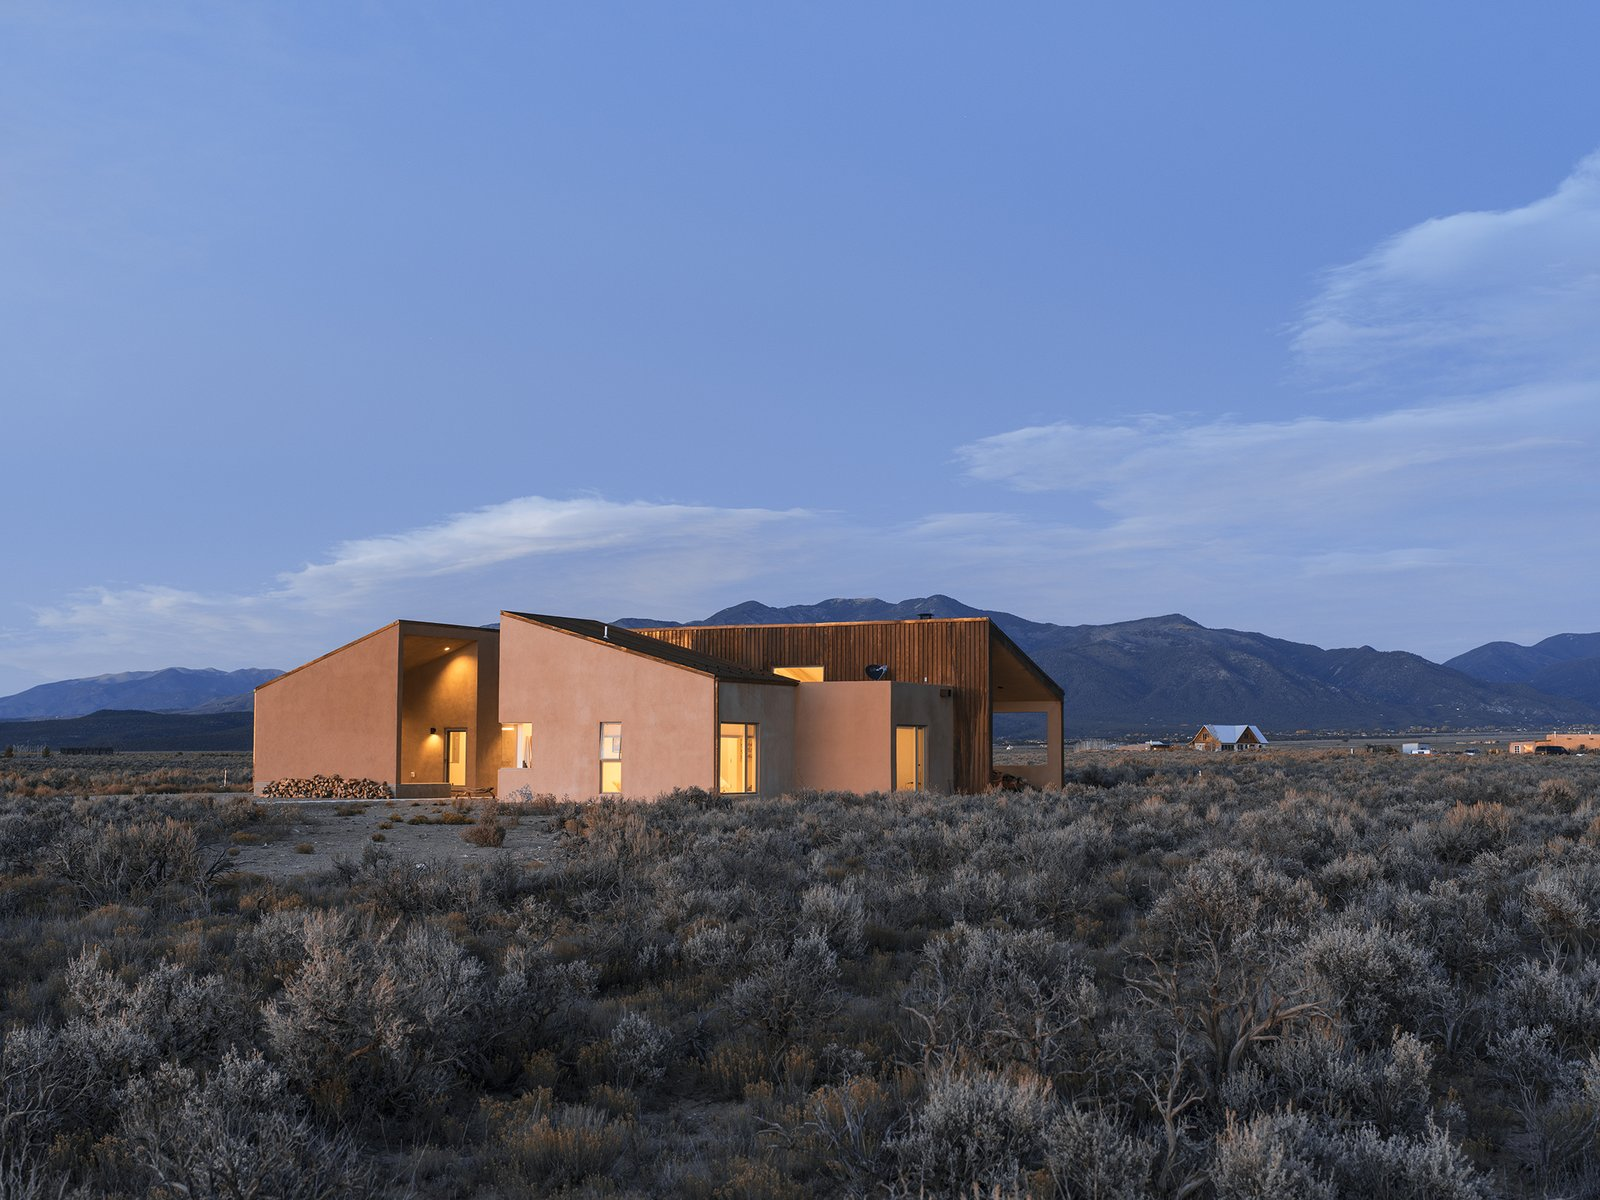 """On a five-acre property outside Taos, New Mexico, designer Molly Bell worked closely with her father, builder Ed Bell, to create a new residence for owner Lois Rodin. """"Lois requested that it appear as a grouping of individual masses, so that it read more like a cluster than a solitary shape,"""" Molly says. """"I hope it shows that it's OK to do something modern in such a traditional environment, and not to be afraid of it."""" - Taos, New Mexico Dwell Magazine : July / August 2017 Tagged: Desert, Shrubs, Exterior, Stucco Siding Material, House, and Wood Siding Material.  Photo 2 of 11 in A Rookie Designer and Her Builder Father Create an Artist's Sculptural Loft in the Desert"""